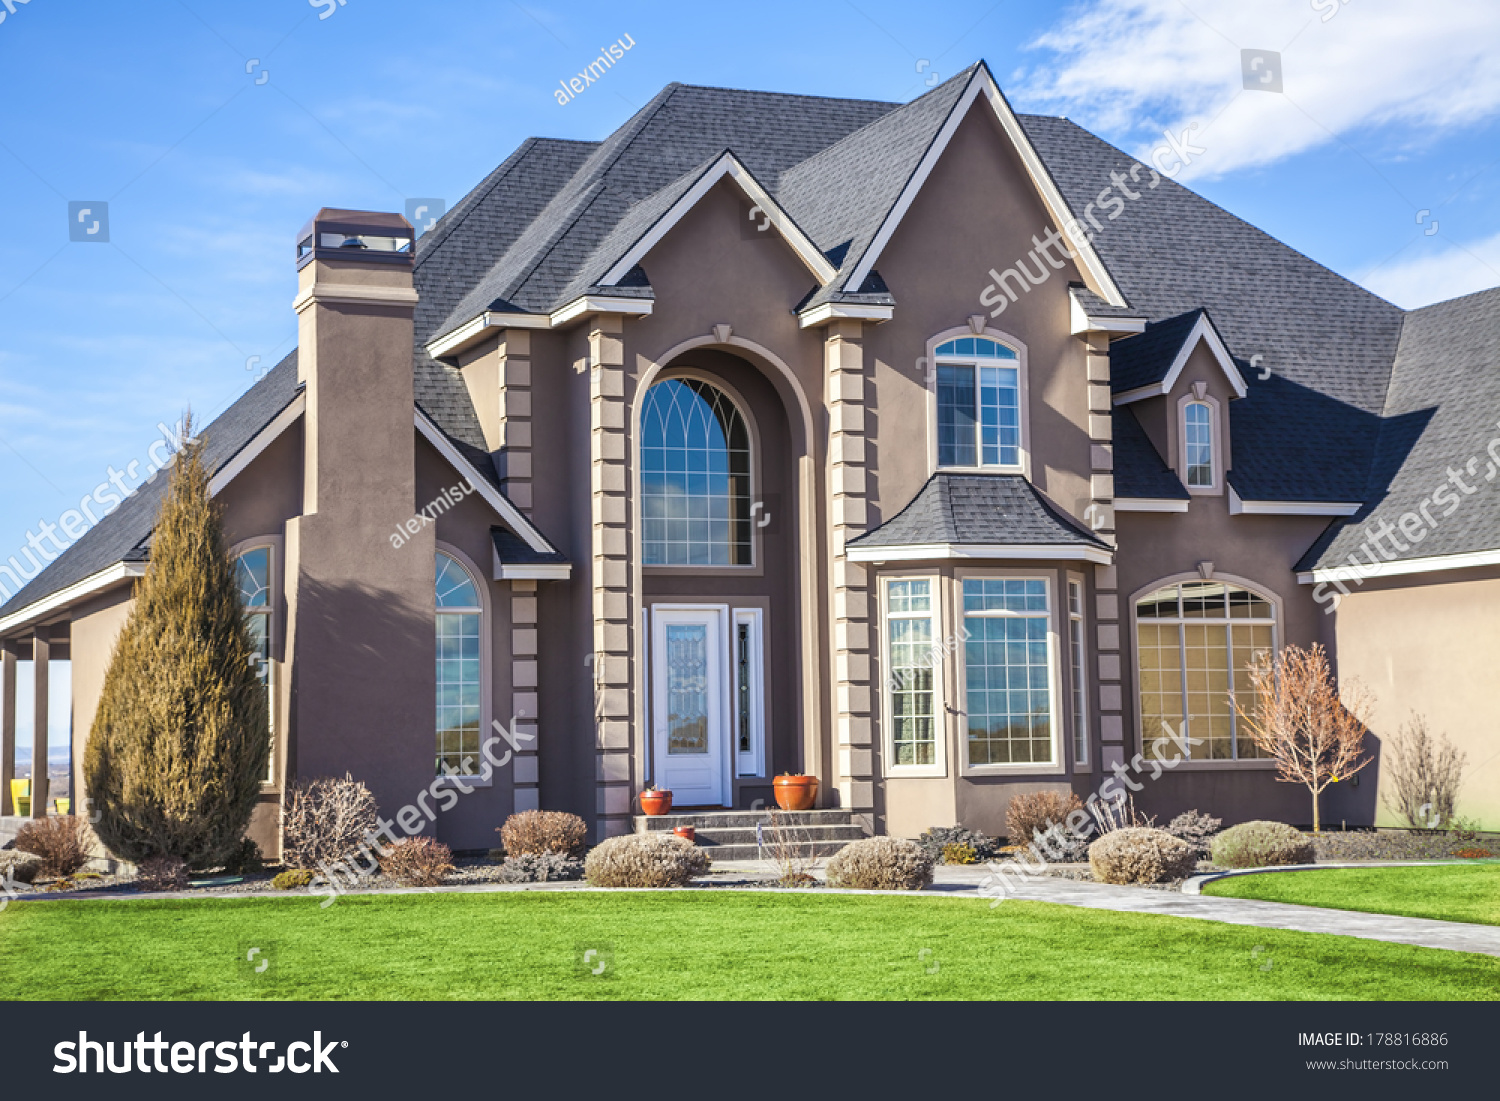 Suburban house on beautiful sunny day stock photo for Suburban house plans